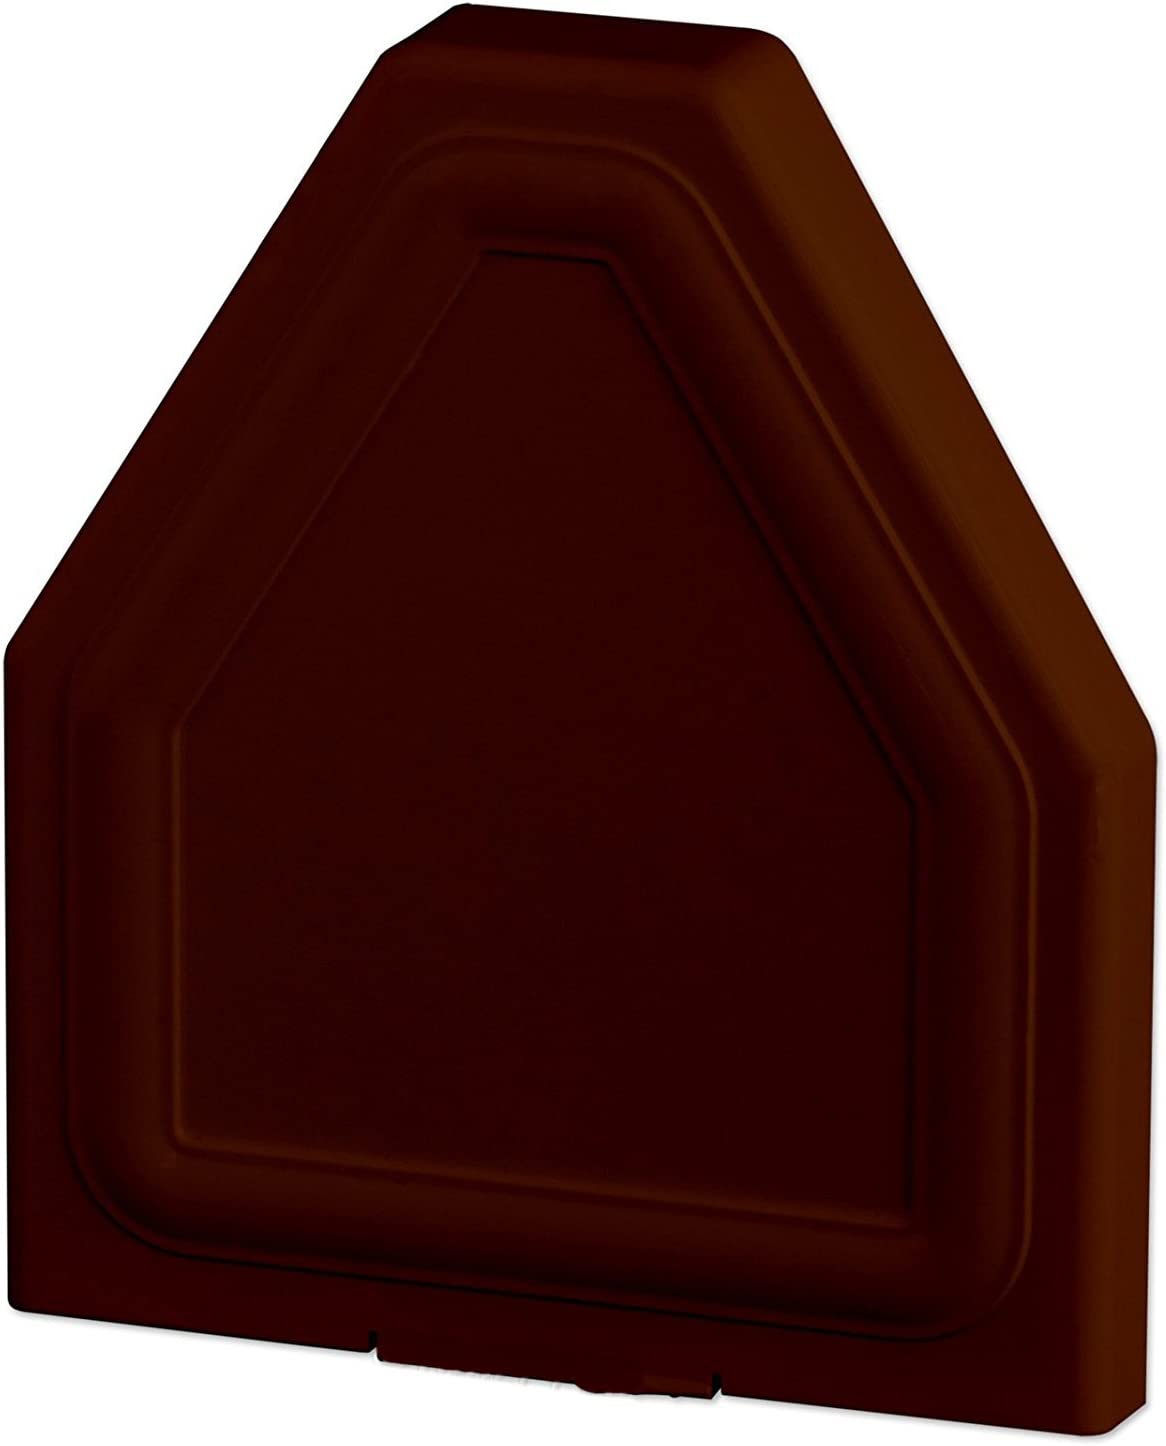 Chocolate Brown Eurocell CRS-8201 Glazing Bar End Cap Conservatory Roof Spar Rafter End Trim